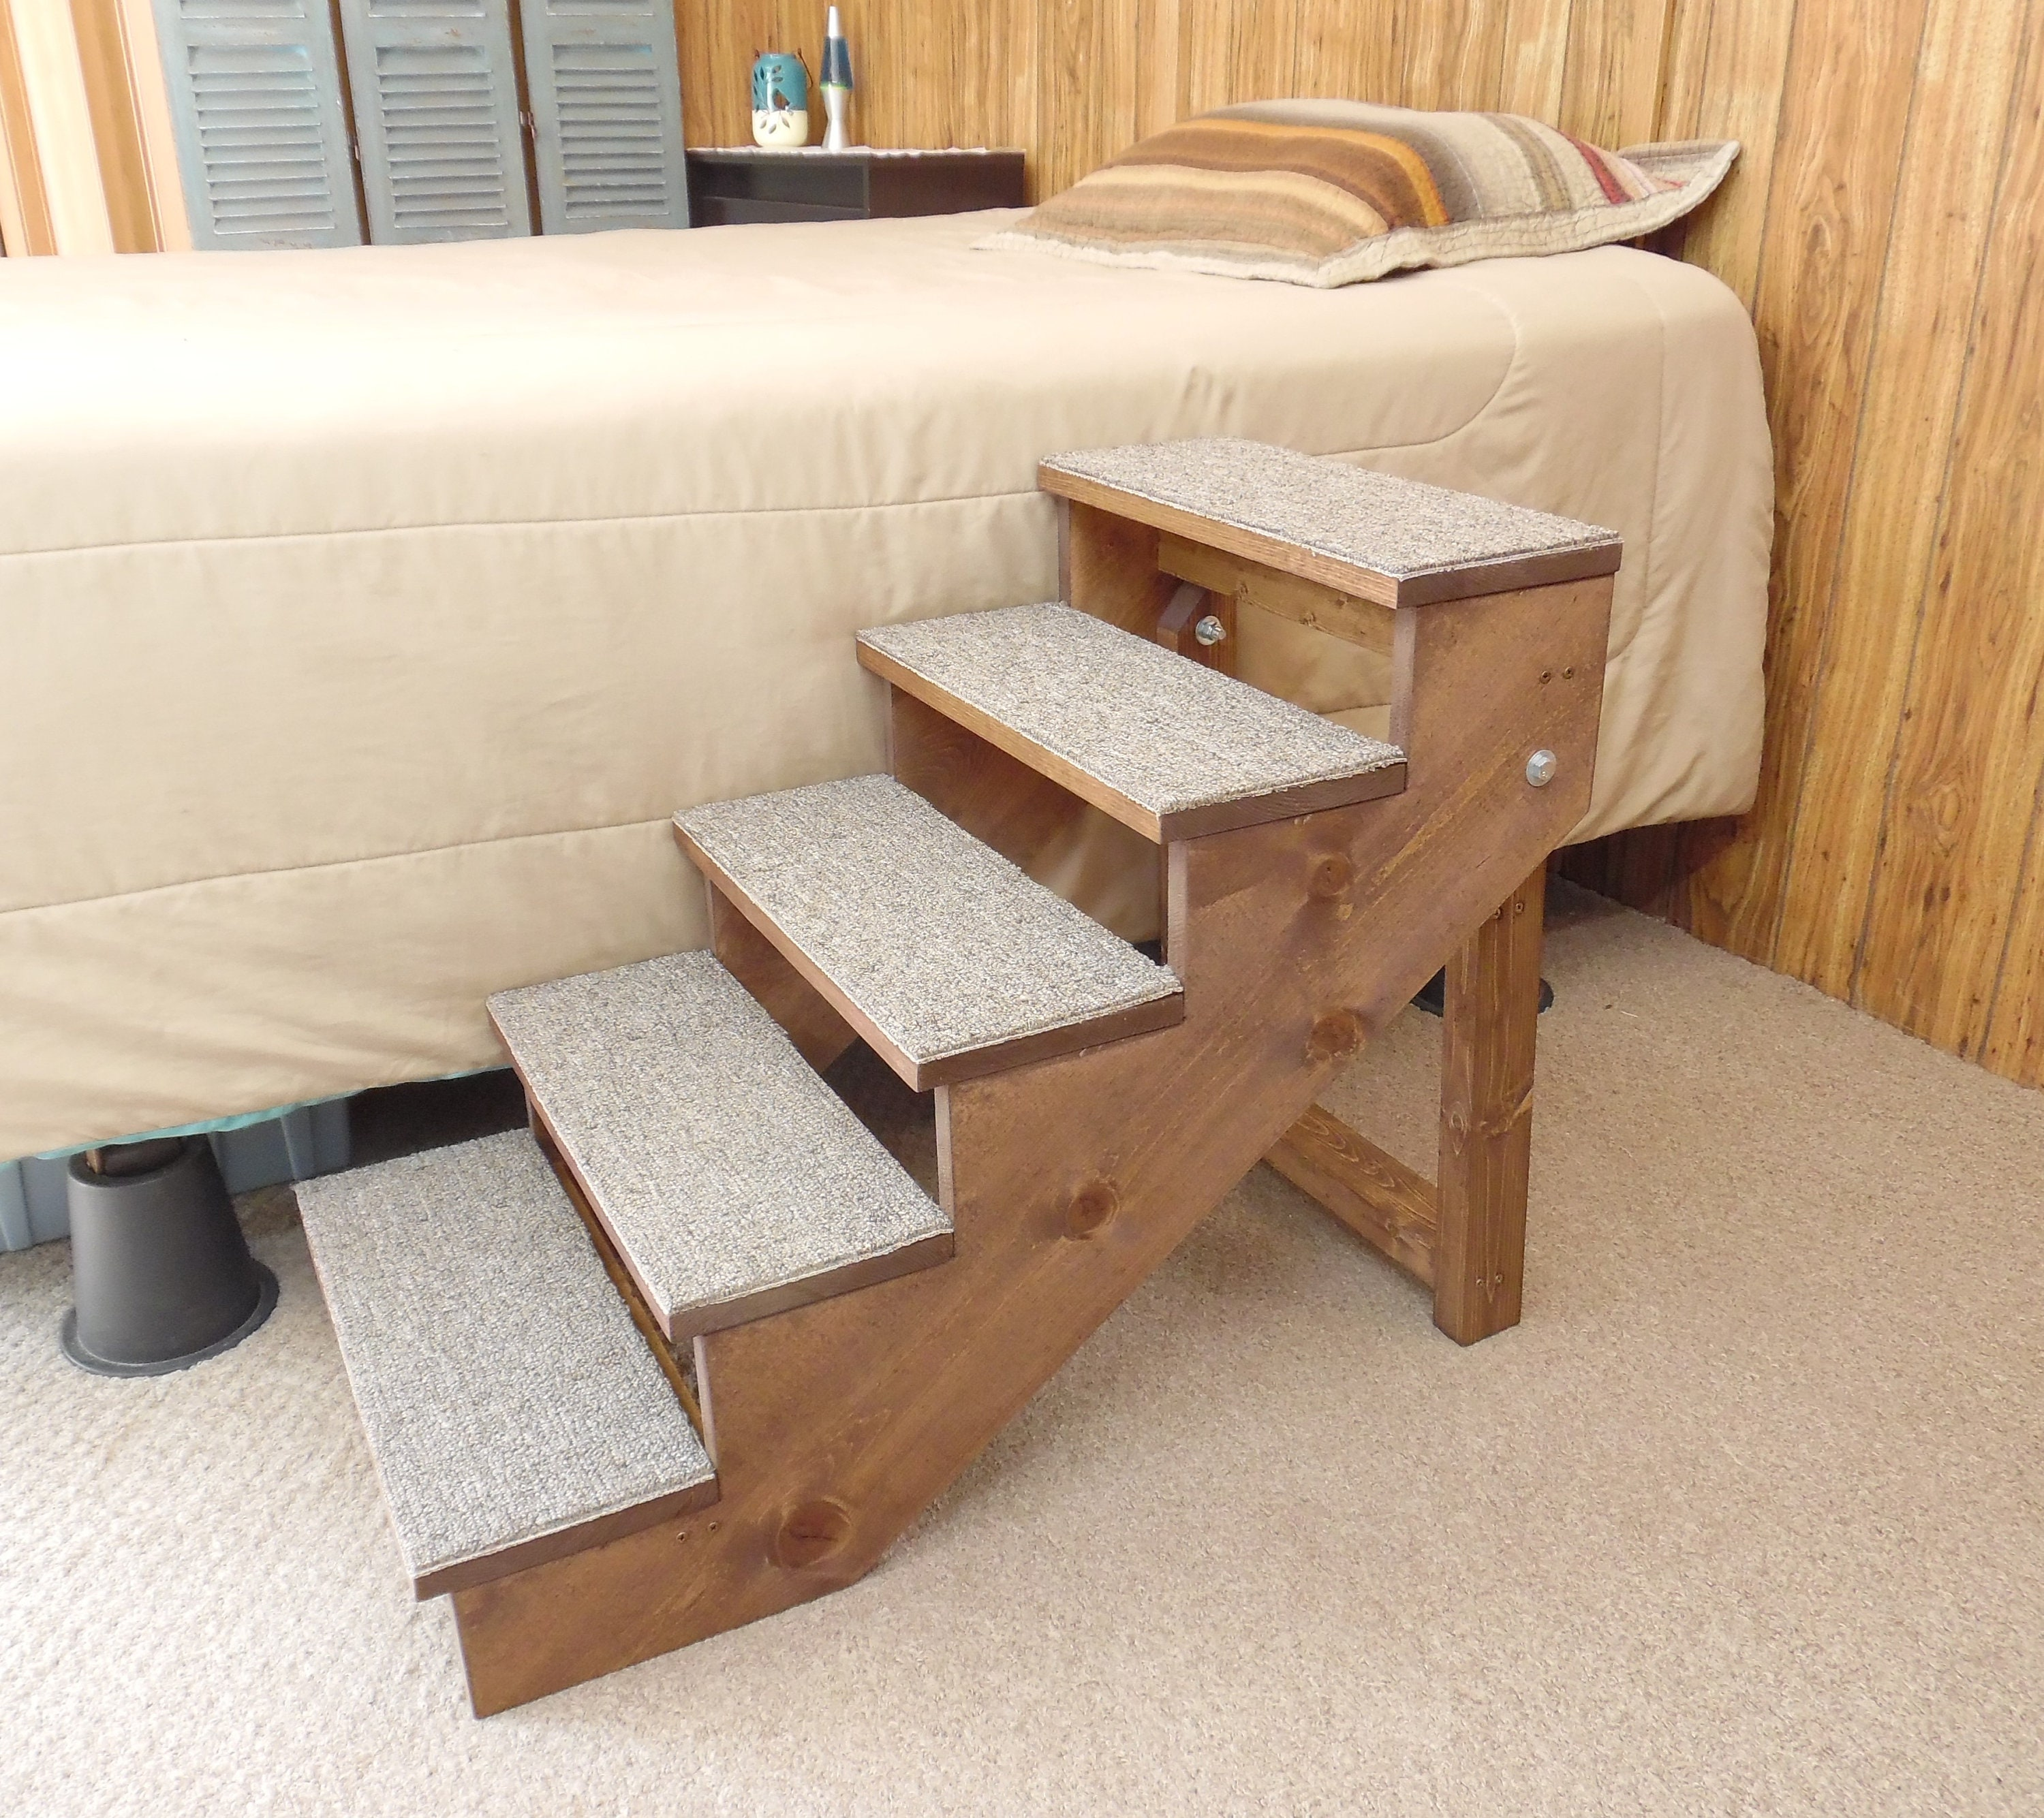 Pet Stairs 16   36 Tall Large Wooden Handmade Folding Dog Stairs 12   18  Wide Pet Steps Ramp Custom To Your Bed